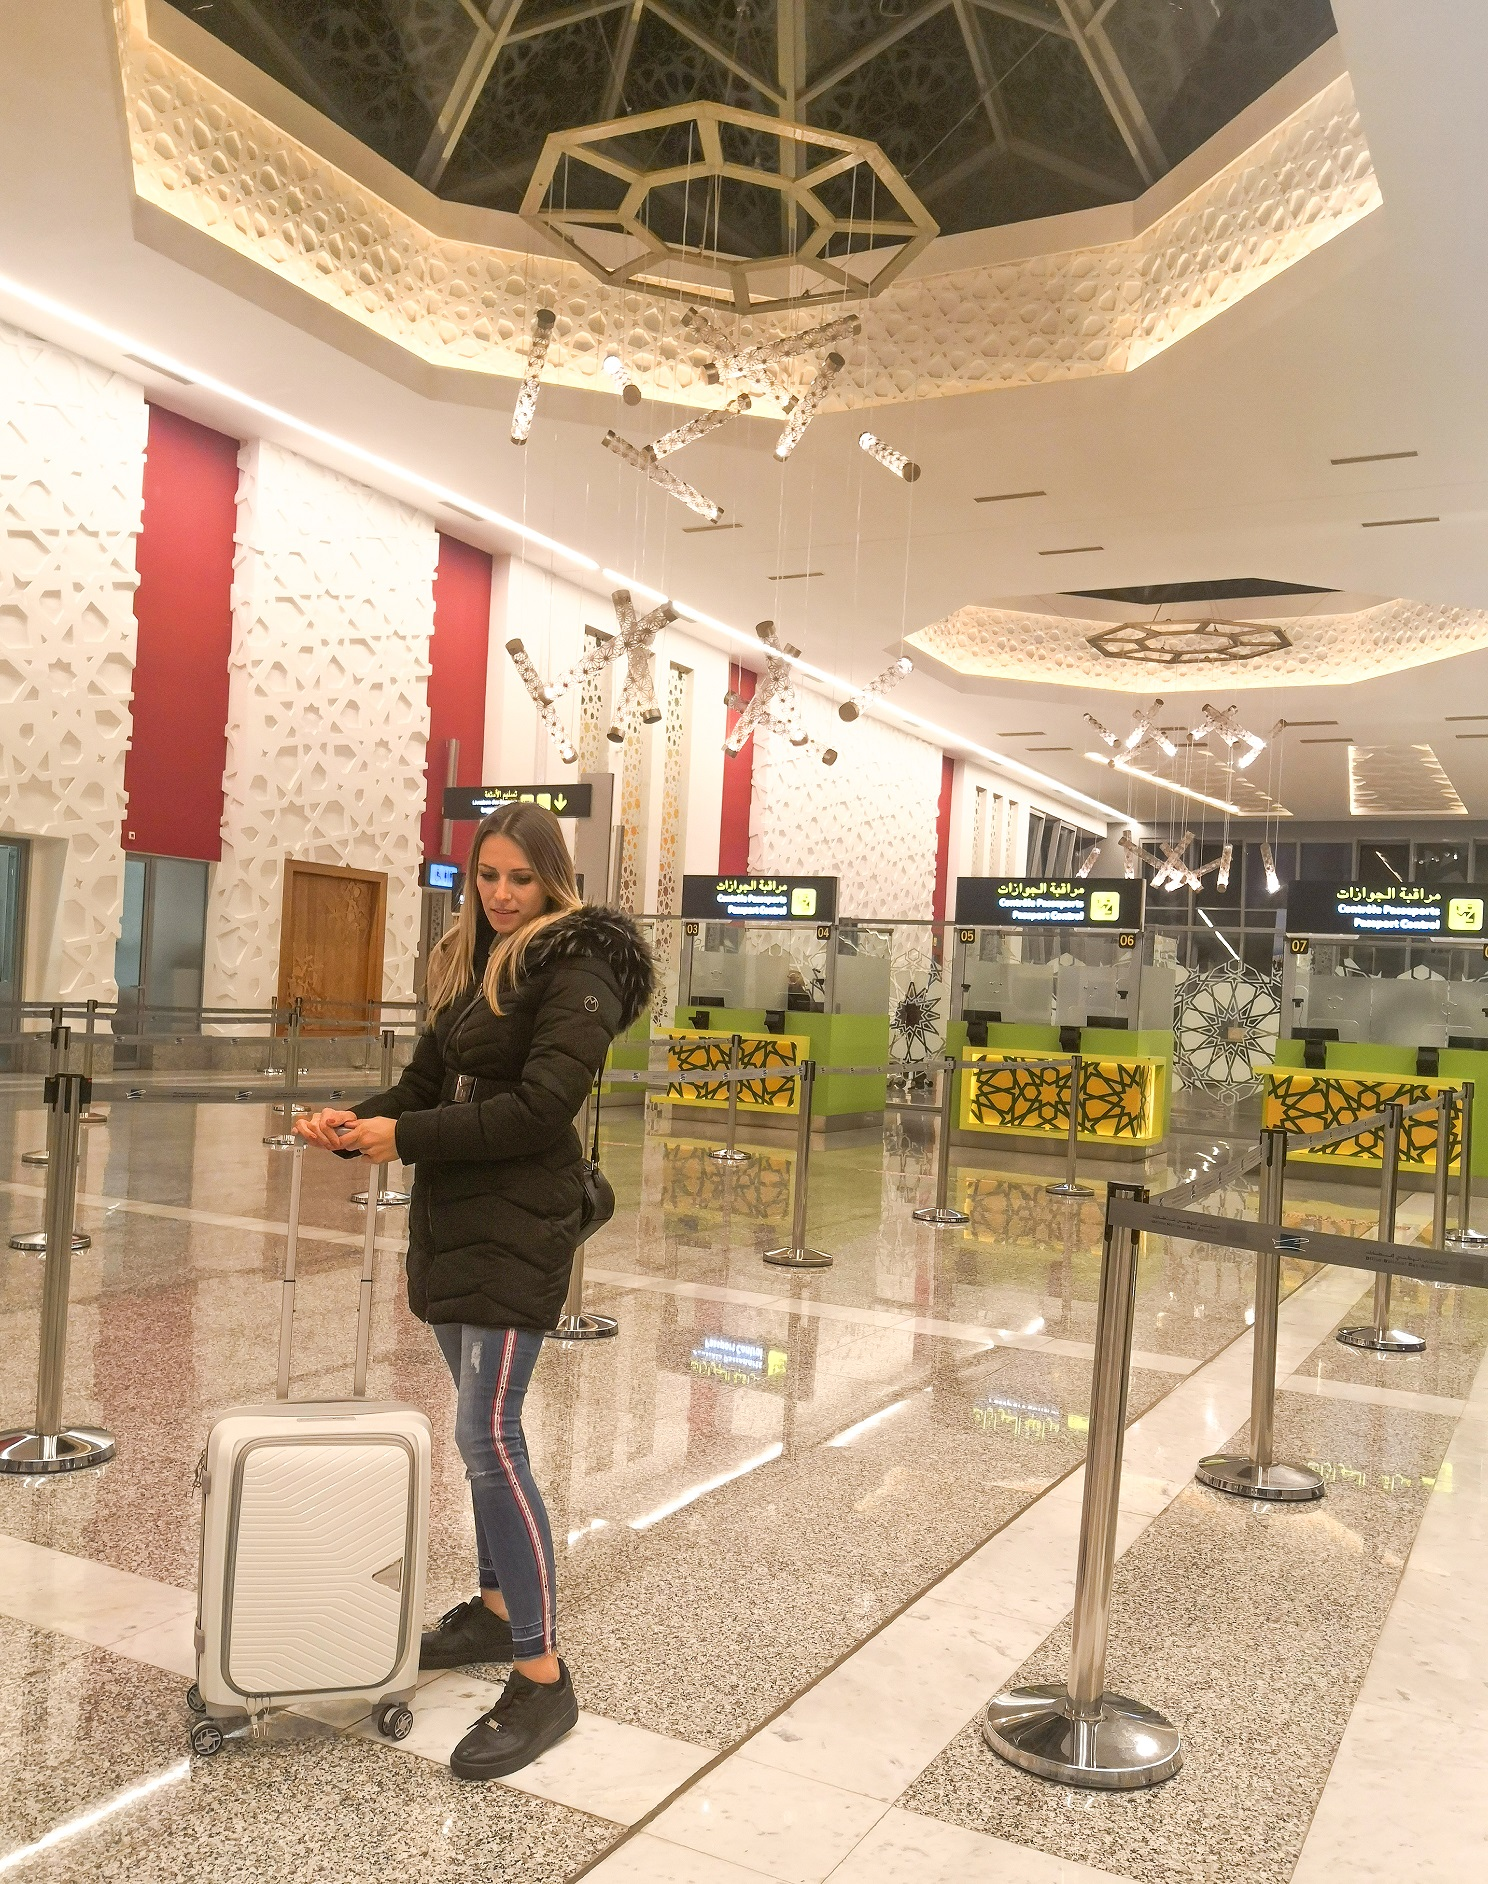 fes saiss airport